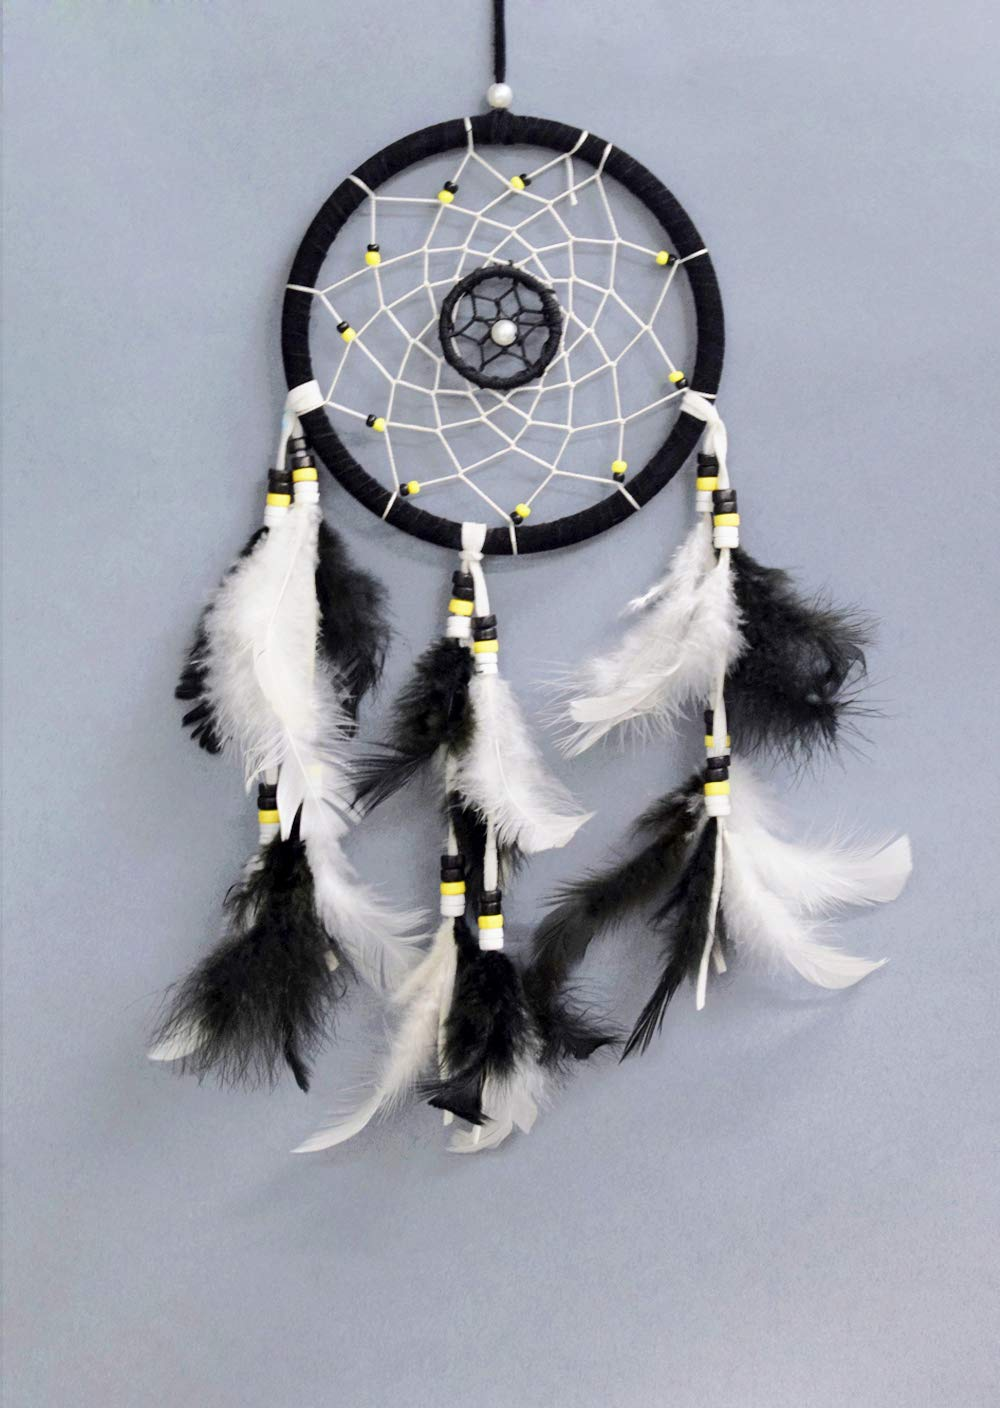 Asian Hobby Crafts Traditional Handcrafted Dream Catcher Wall Hanging with Natural Feathers – Black & White Native Boho Style for Room Decor, Baby Shower, Gifting, Size – 12 x 5.5 inches (L x Dia)